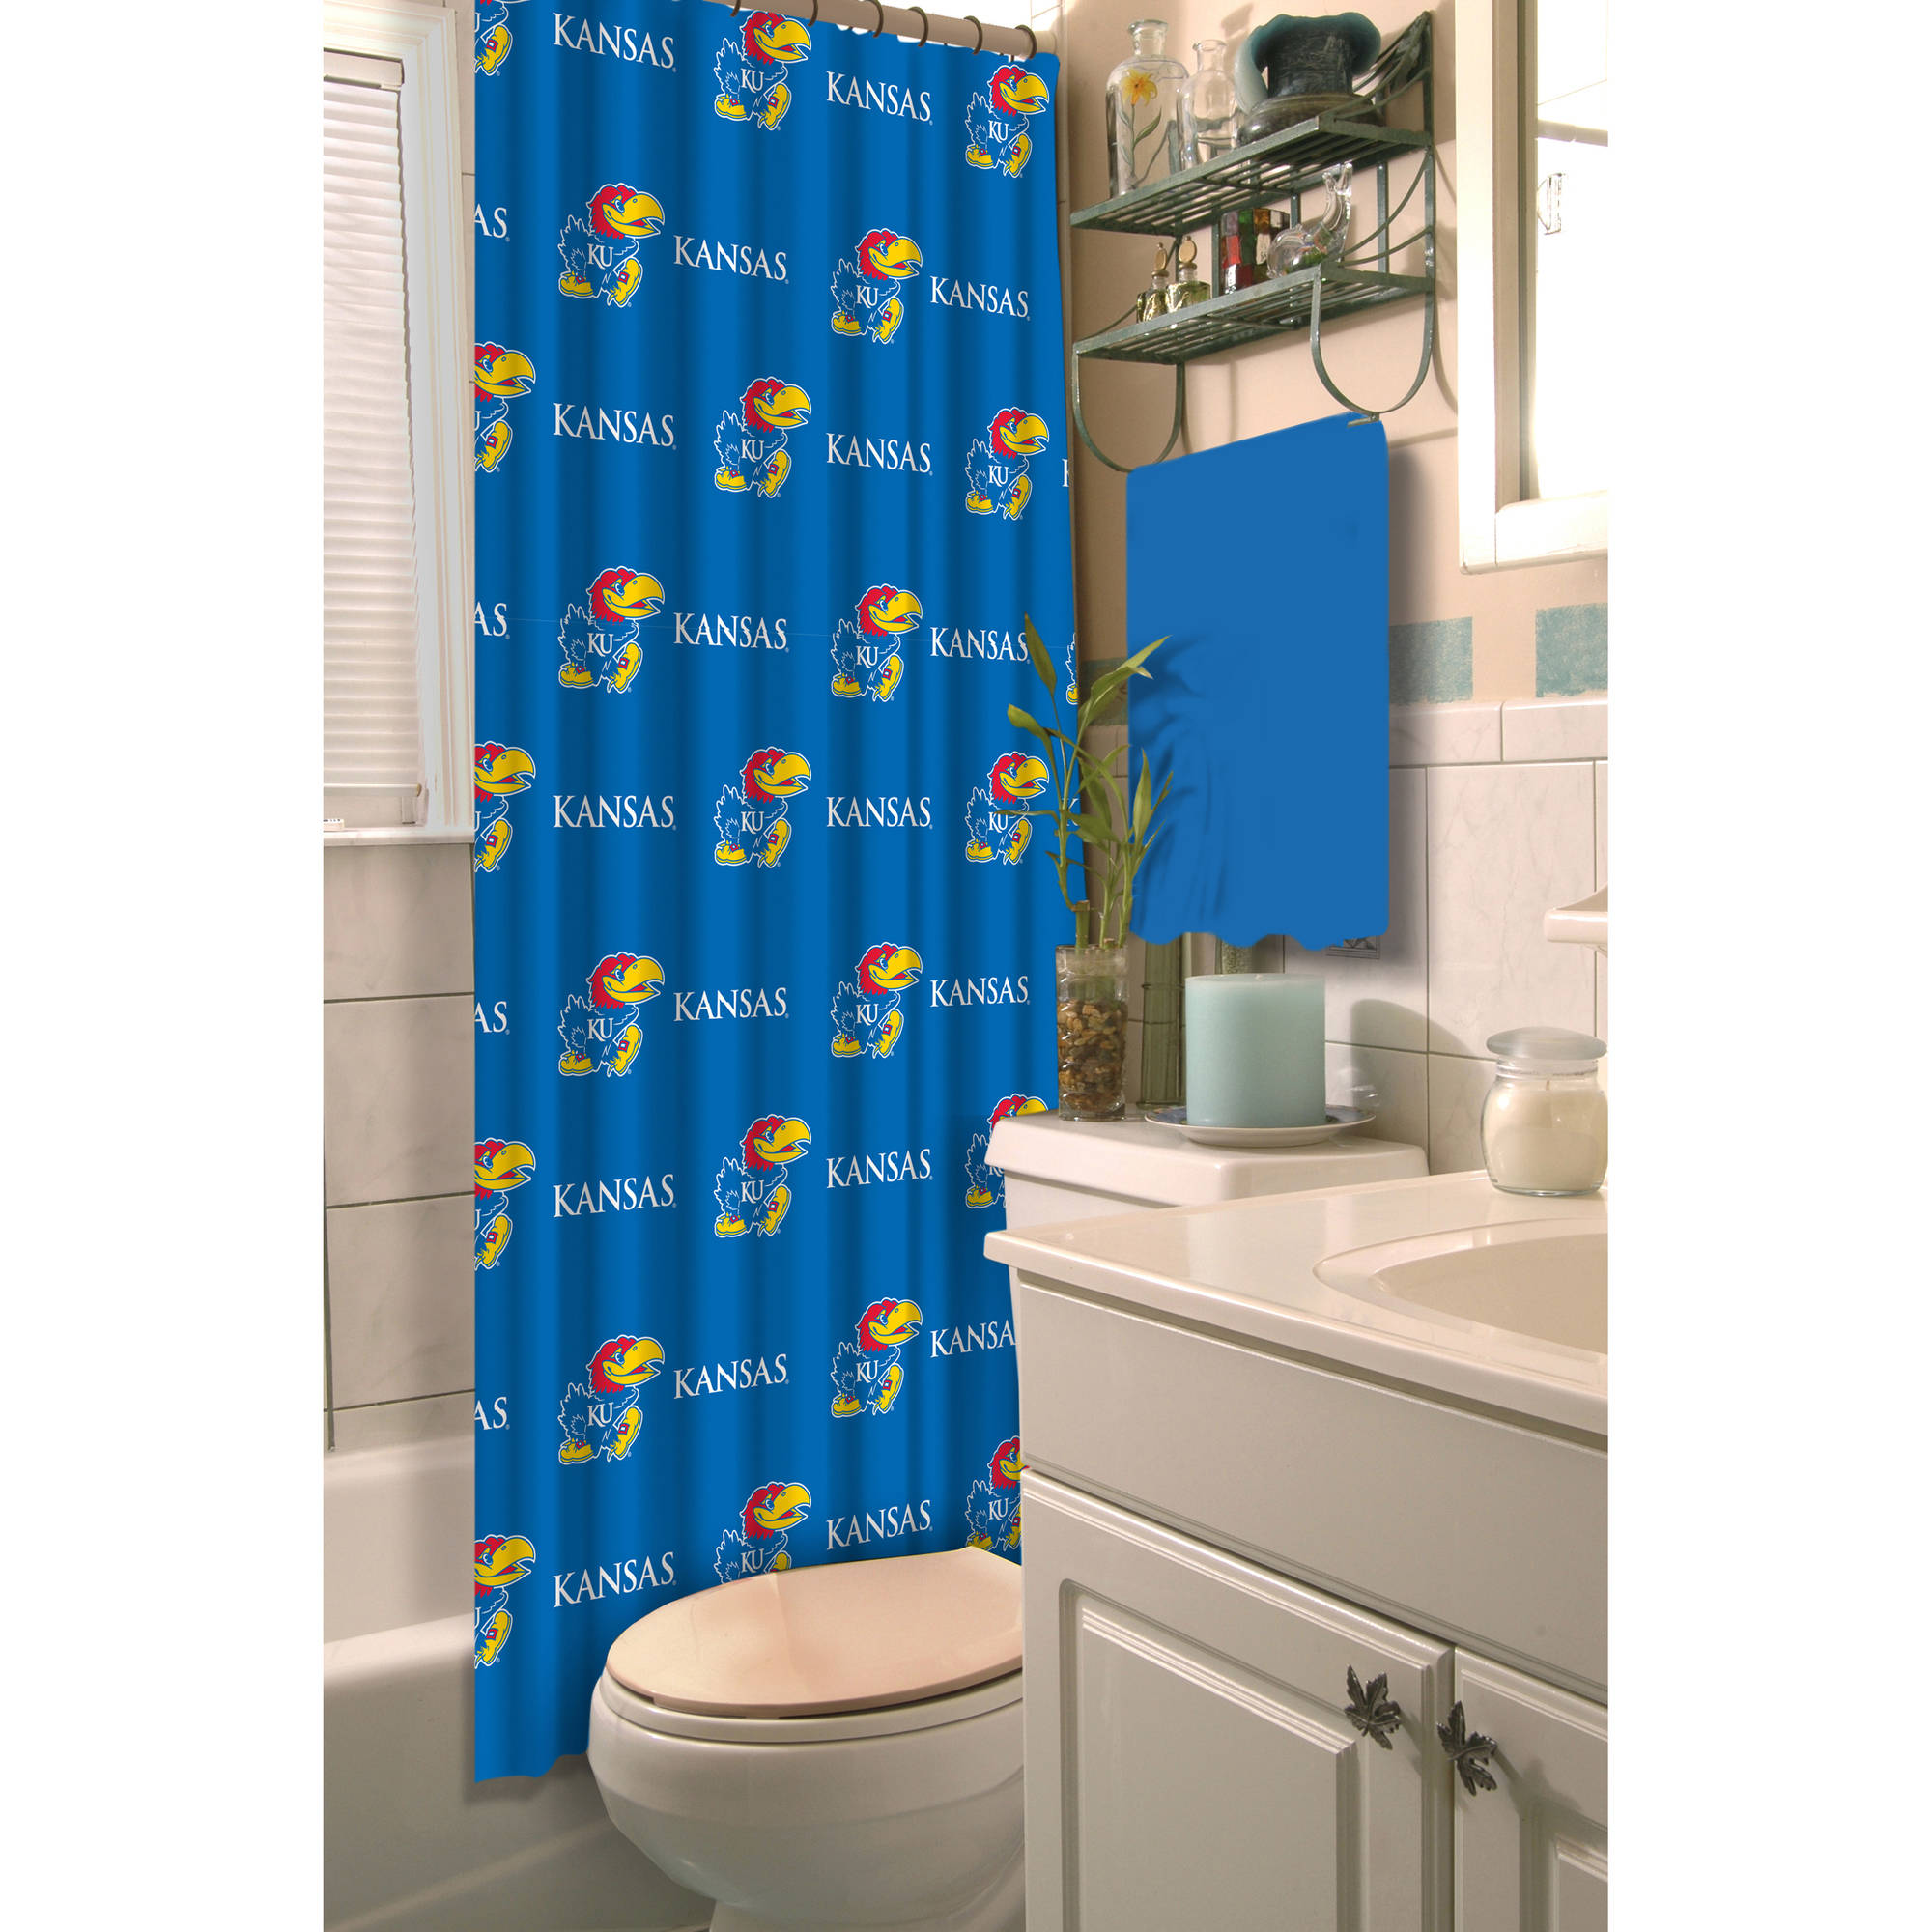 NCAA University of Kansas Decorative Bath Collection - Shower Curtain